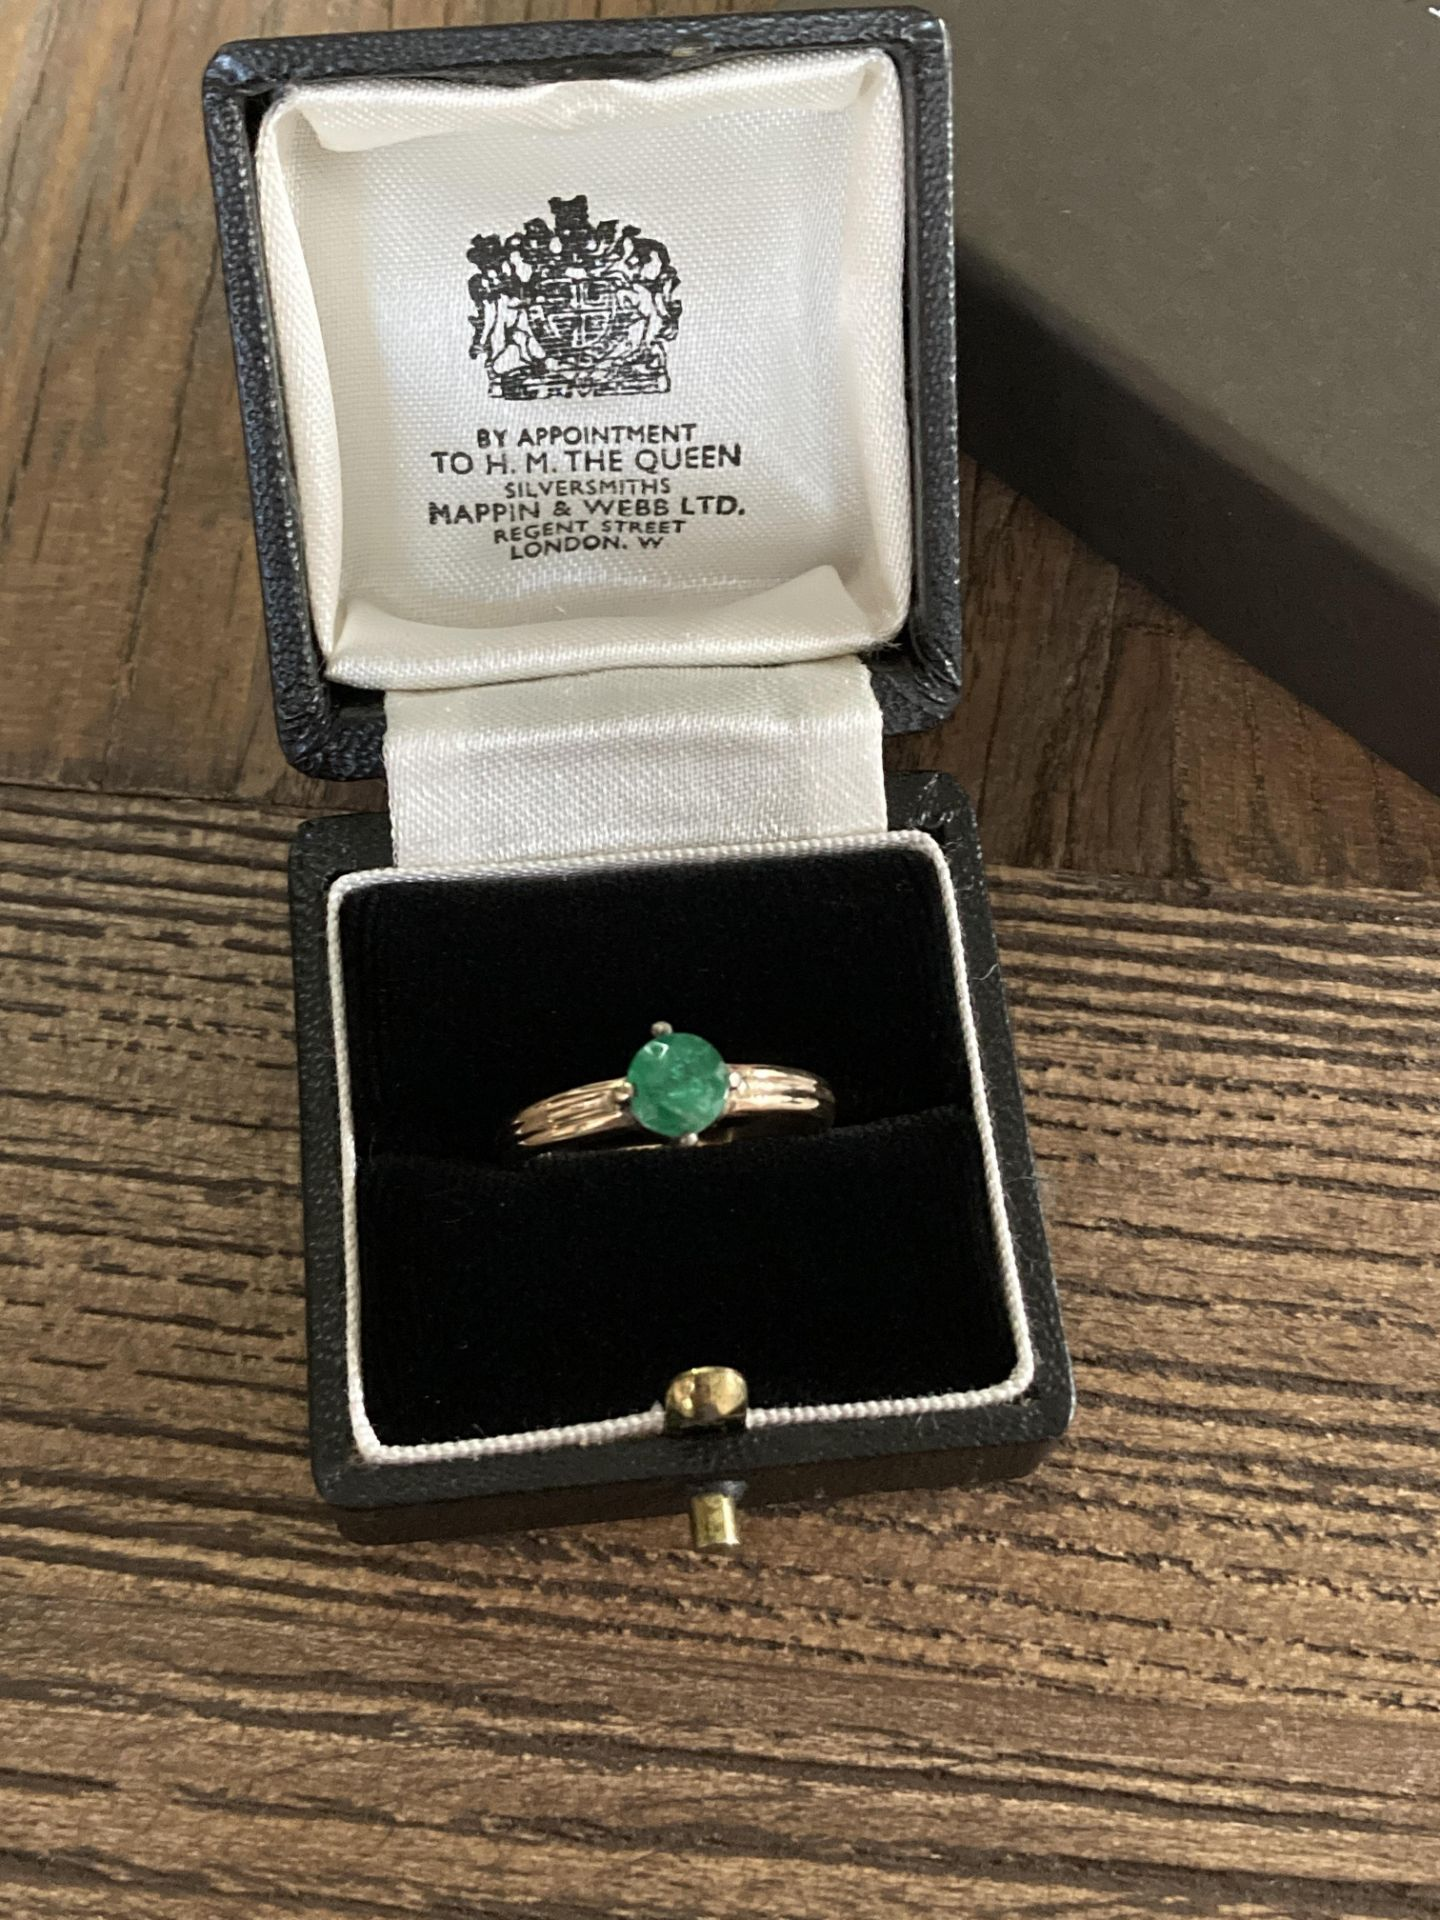 EMERALD GOLD RING - SIZE P /12 - Image 2 of 3